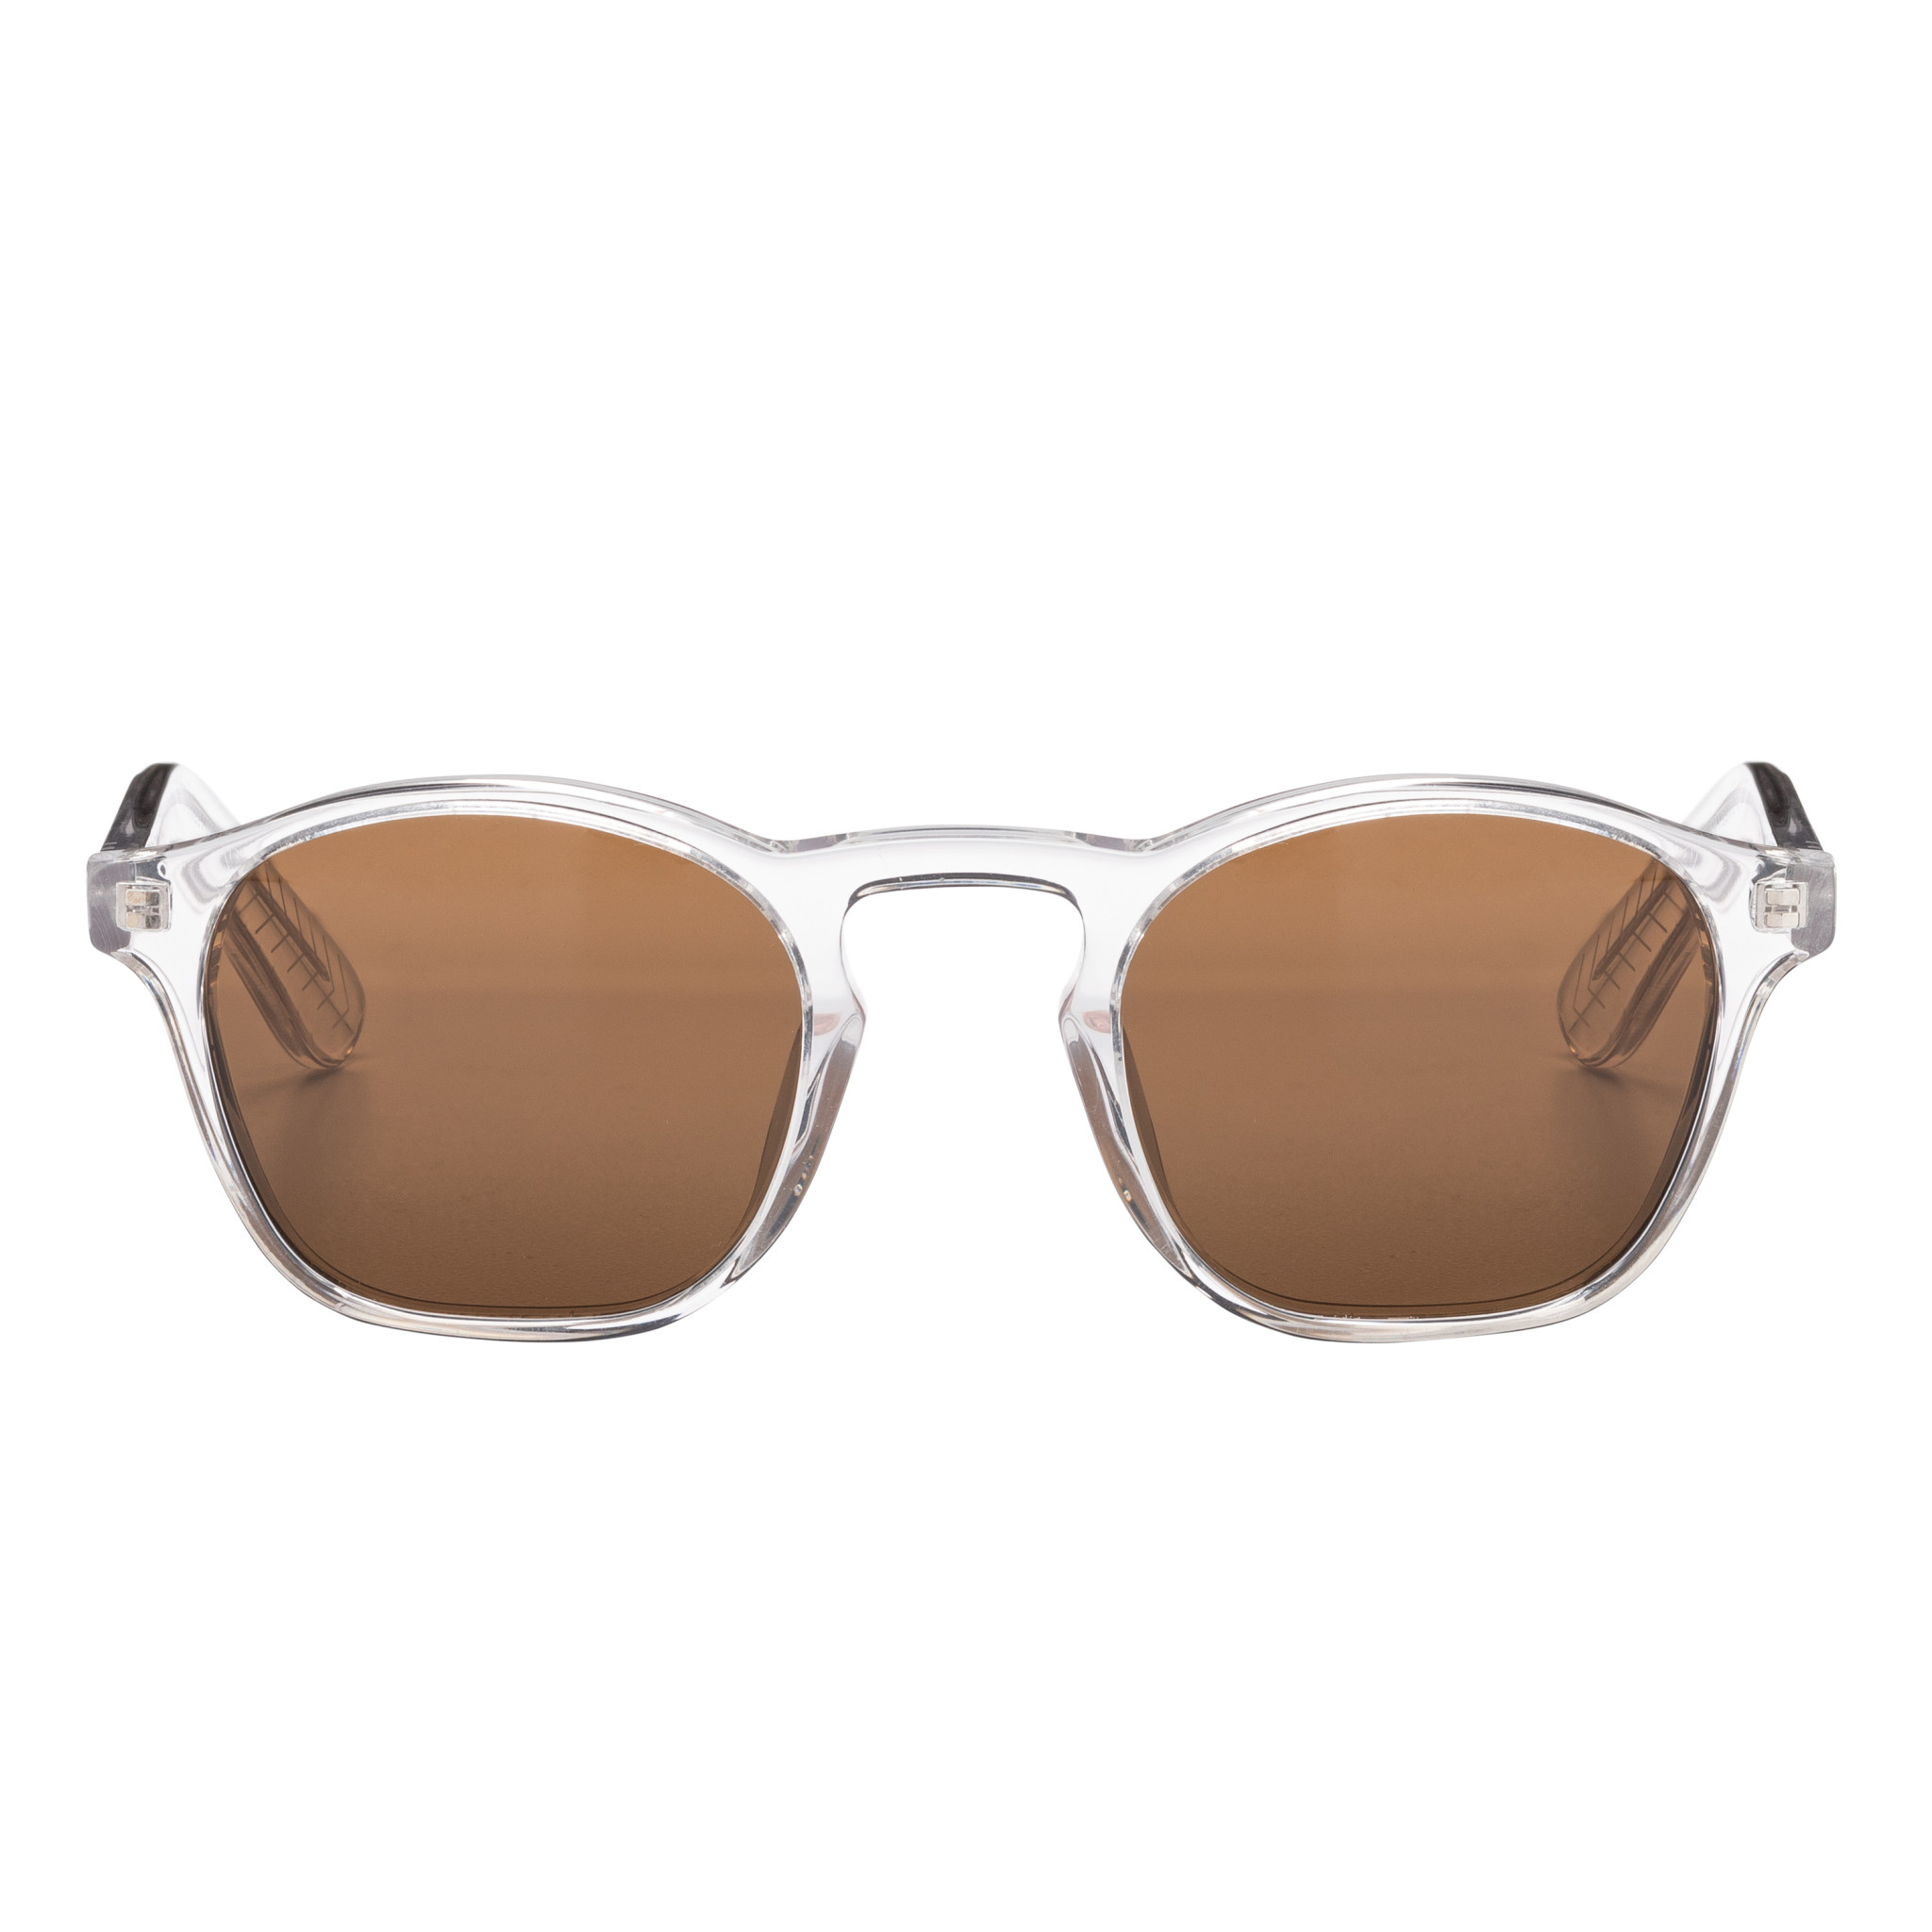 Spitfire Copy of Spitfire VHX (Cut Collection) - Tortoise Shell/Brown